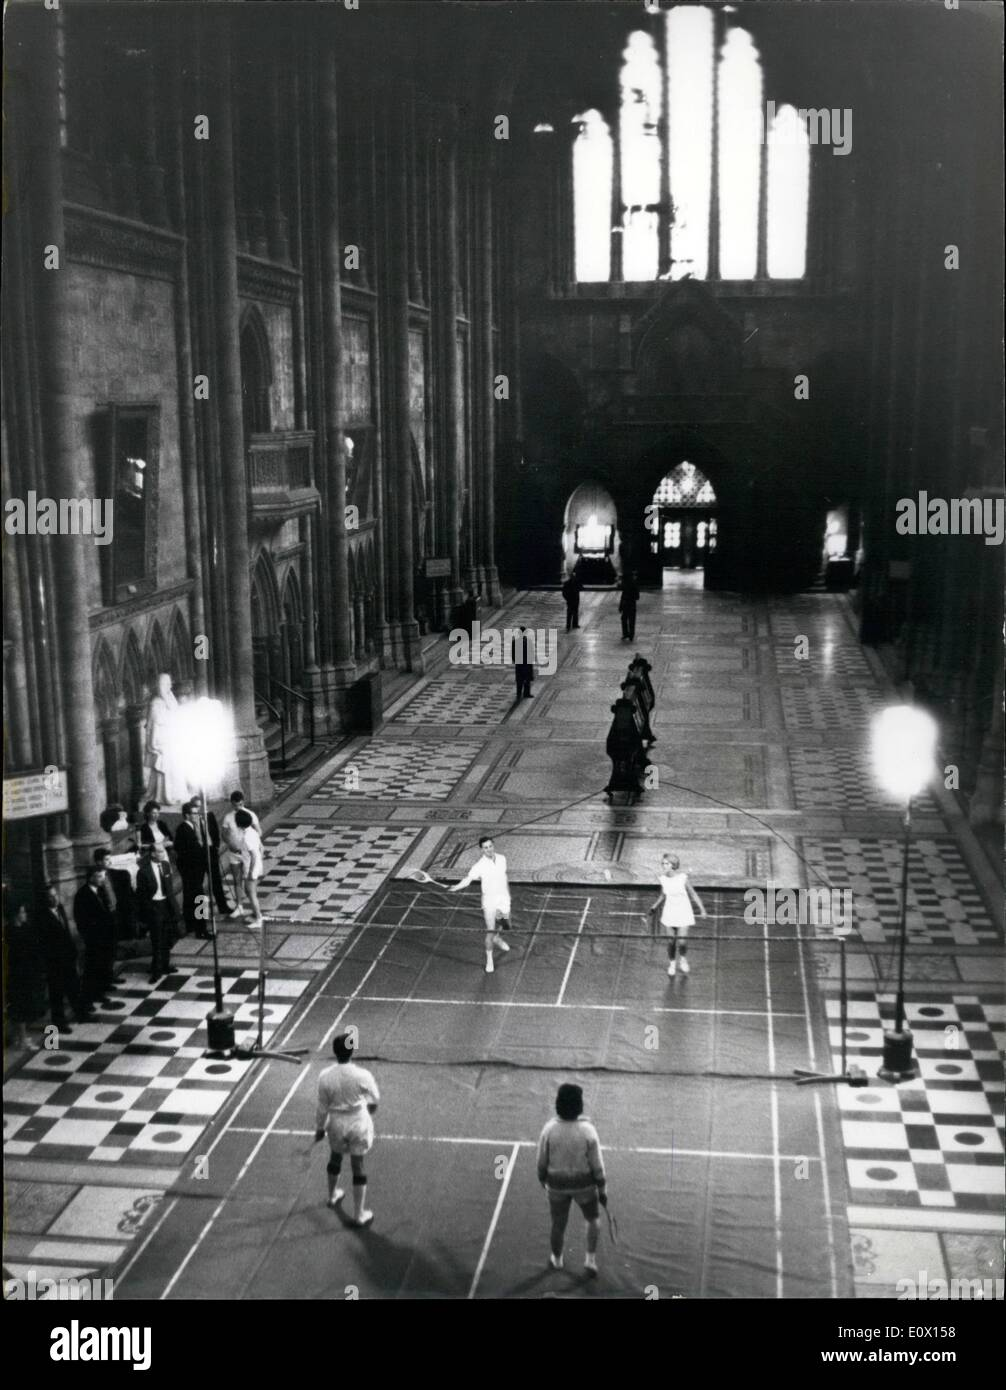 Oct. 10, 1964 - An Adjournment - at the Royal Courts of Justice in the London.: The Royal Courts of Justice in the Strand take life very much as it comes. Whether it be a bitter divorce case or the tangled complexities of Chancery and Probate, of Admiralty and Appeal. These are its normal and historic pursuits, protected by jealous dignity and proud tradition. But at night, when the judges have gone and counsel have returned safe to the rules of badminton. The Supreme Court of Judicature moves out, and twice a week the Supreme Court Badminton Club moves in - Stock Image